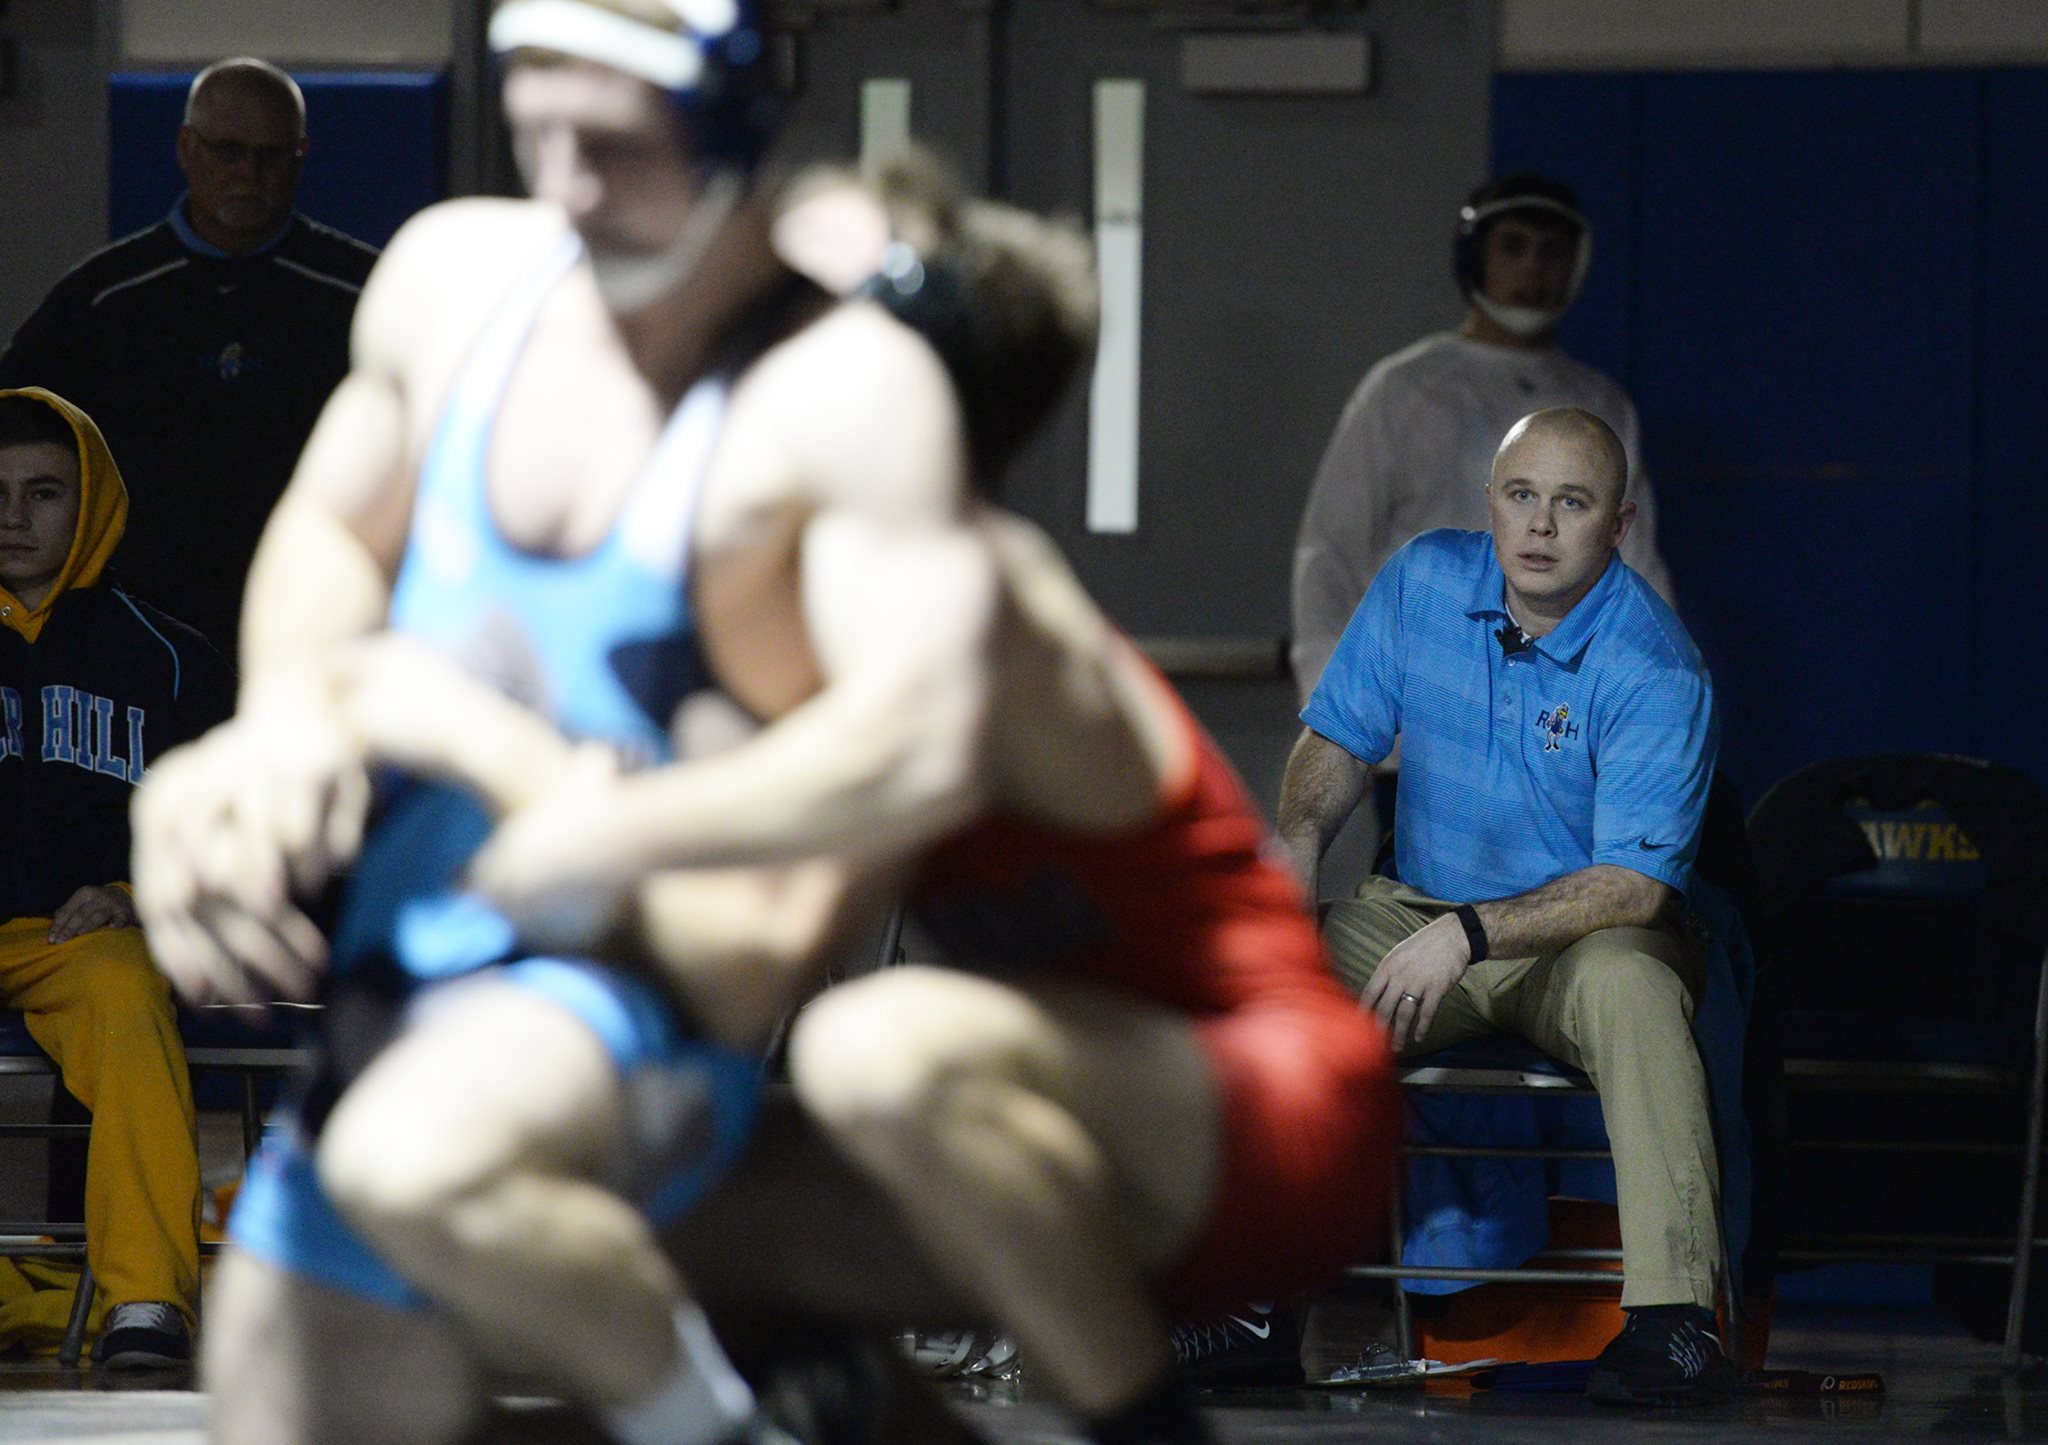 River Hill wrestling, all-access